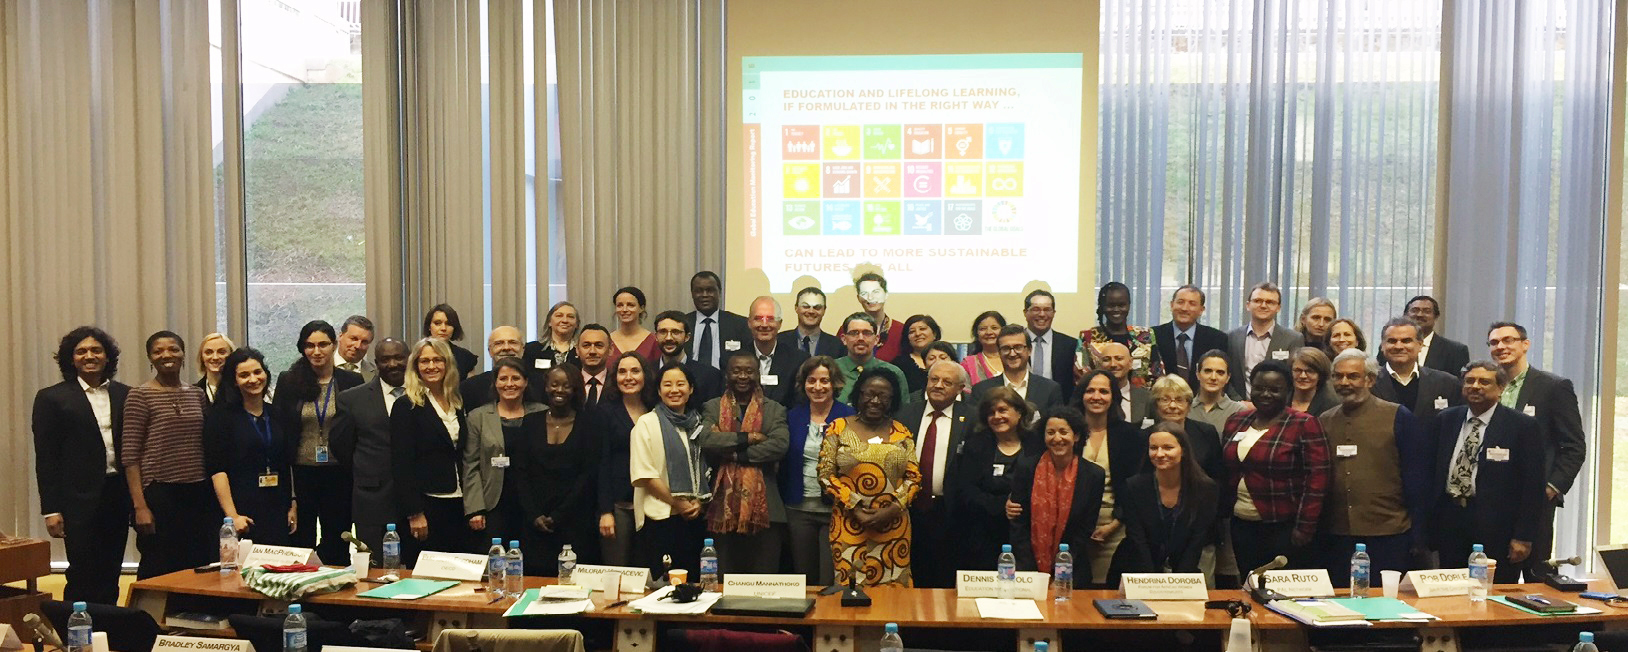 Reflections: The First Global Education Monitoring Report's Advisory Board Meeting